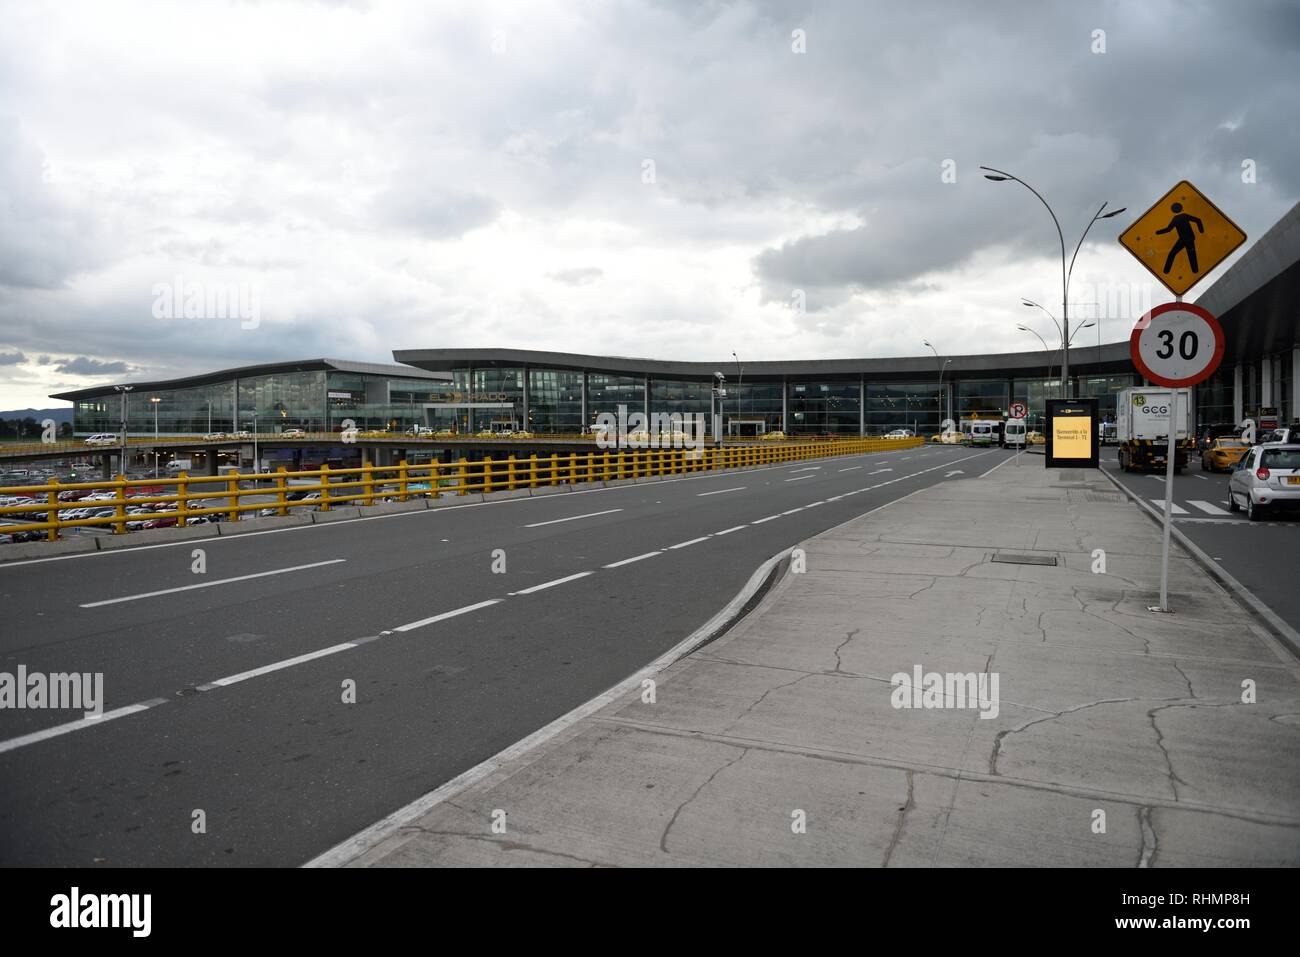 Terminals at El Dorado International AIrport for airline passengers arriving and departing in Bogota, Colombia, South America. - Stock Image